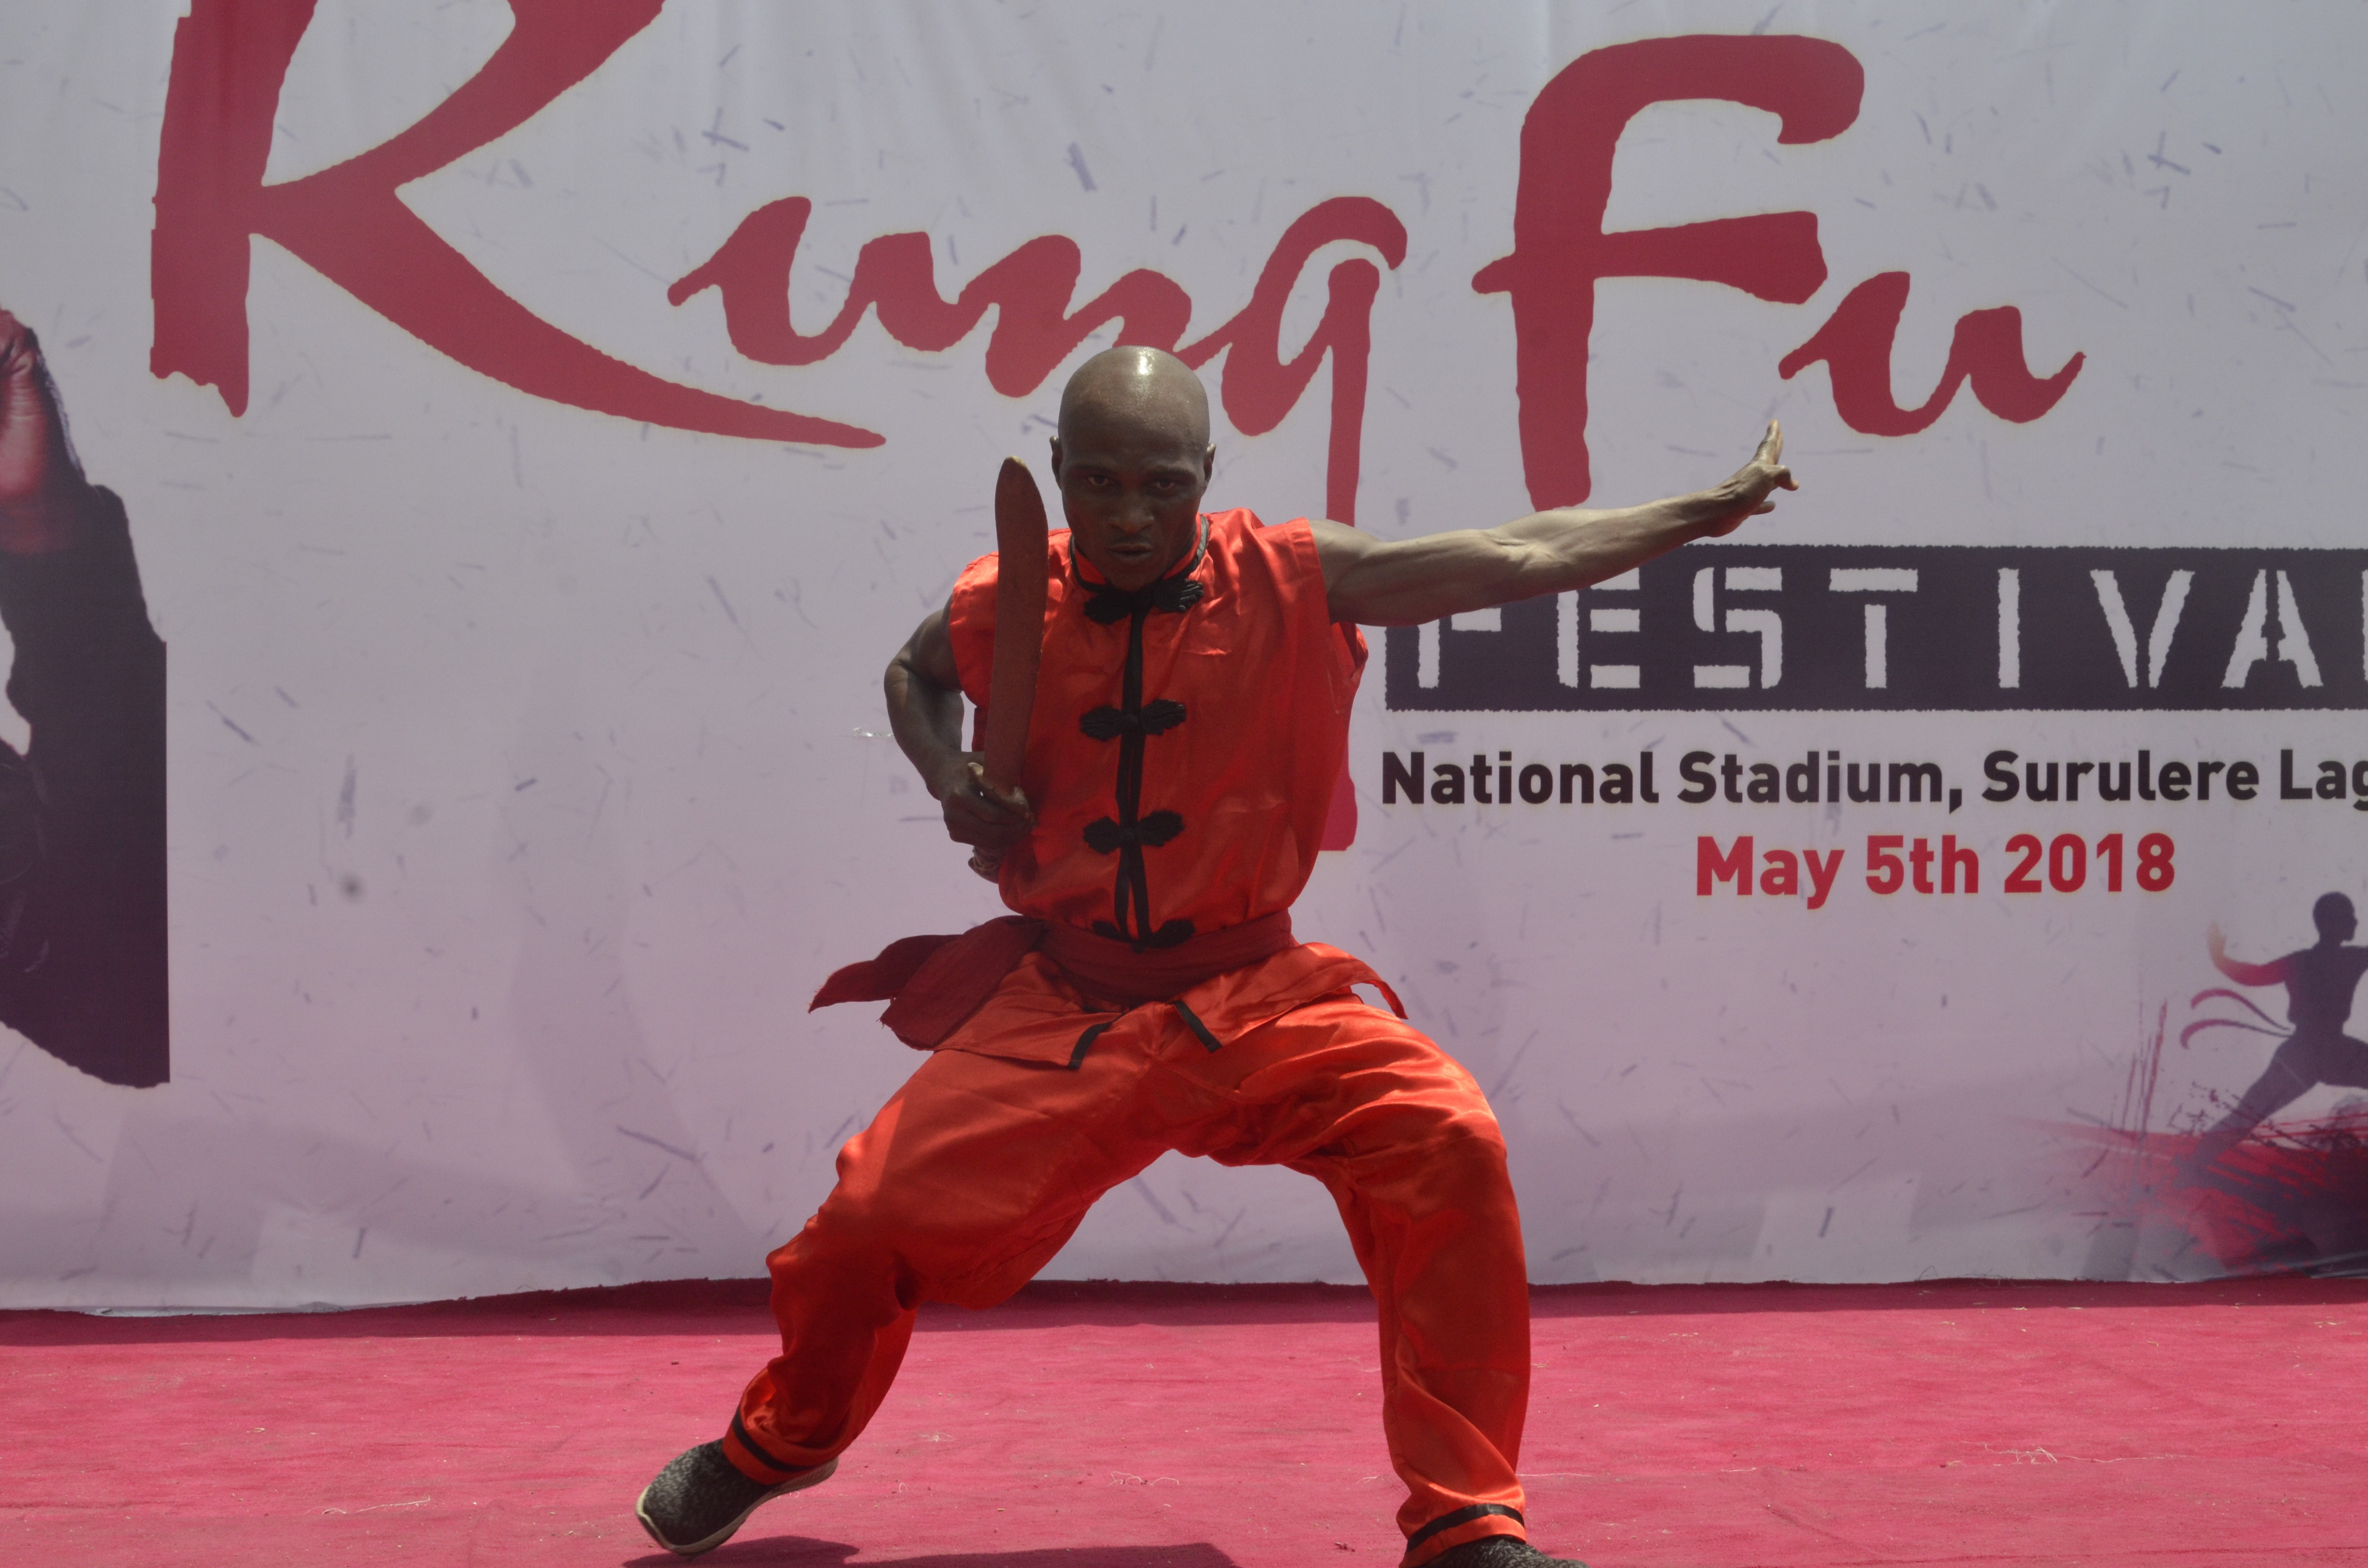 N1,000,000 winner of StarTimes Kung Fu Festival to emerge at National Stadium this Saturday